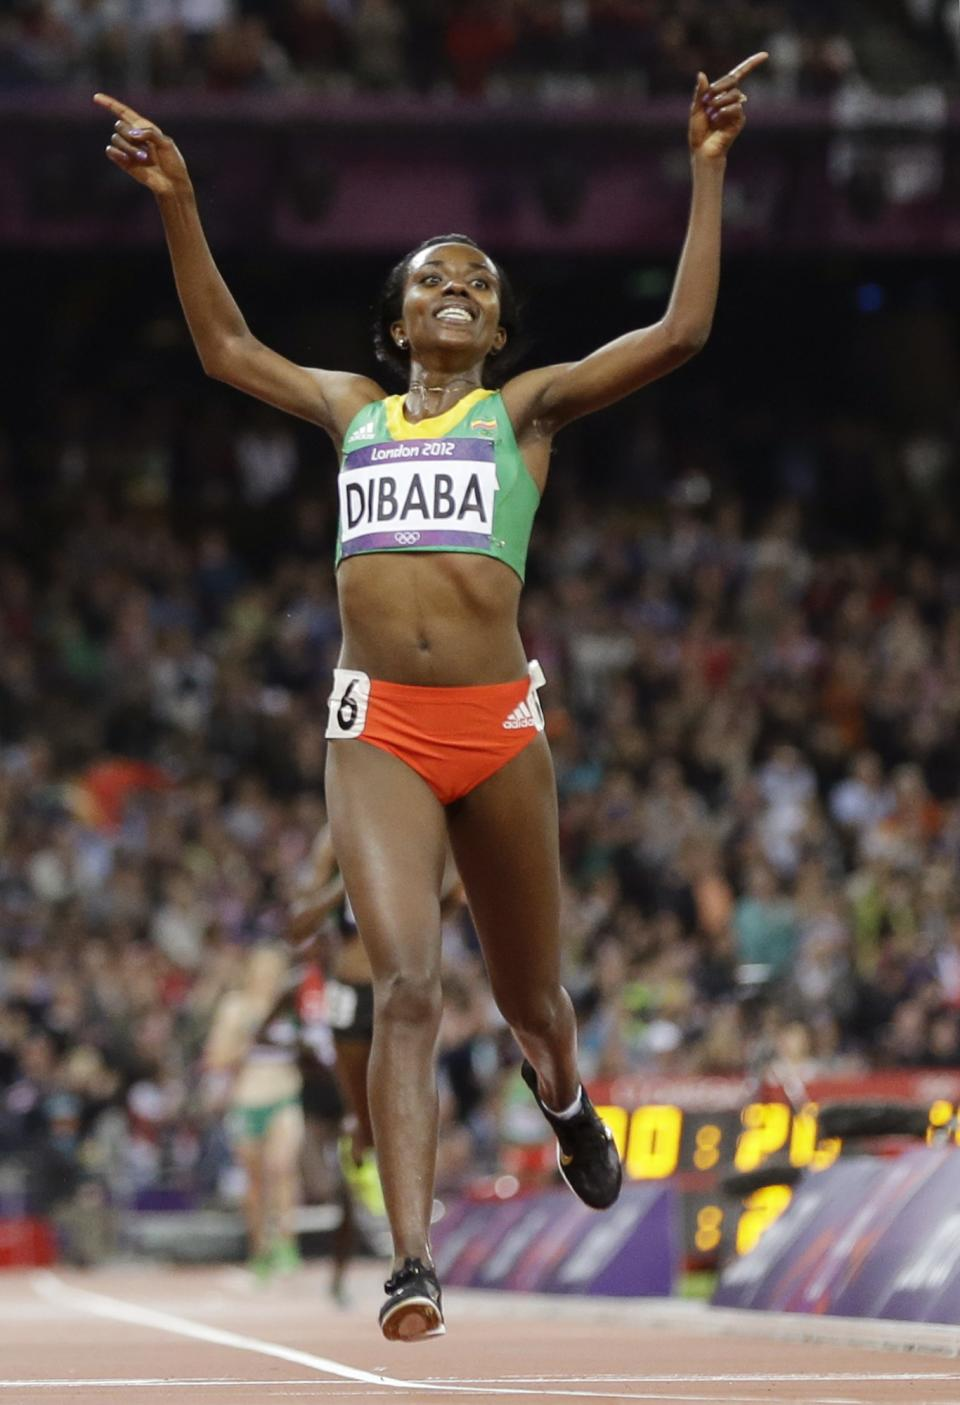 Ethiopia's Tirunesh Dibaba crosses the finish line to win gold in the women's 10,000-meter final during the athletics in the Olympic Stadium at the 2012 Summer Olympics, London, Friday, Aug. 3, 2012. (AP Photo/Anja Niedringhaus)